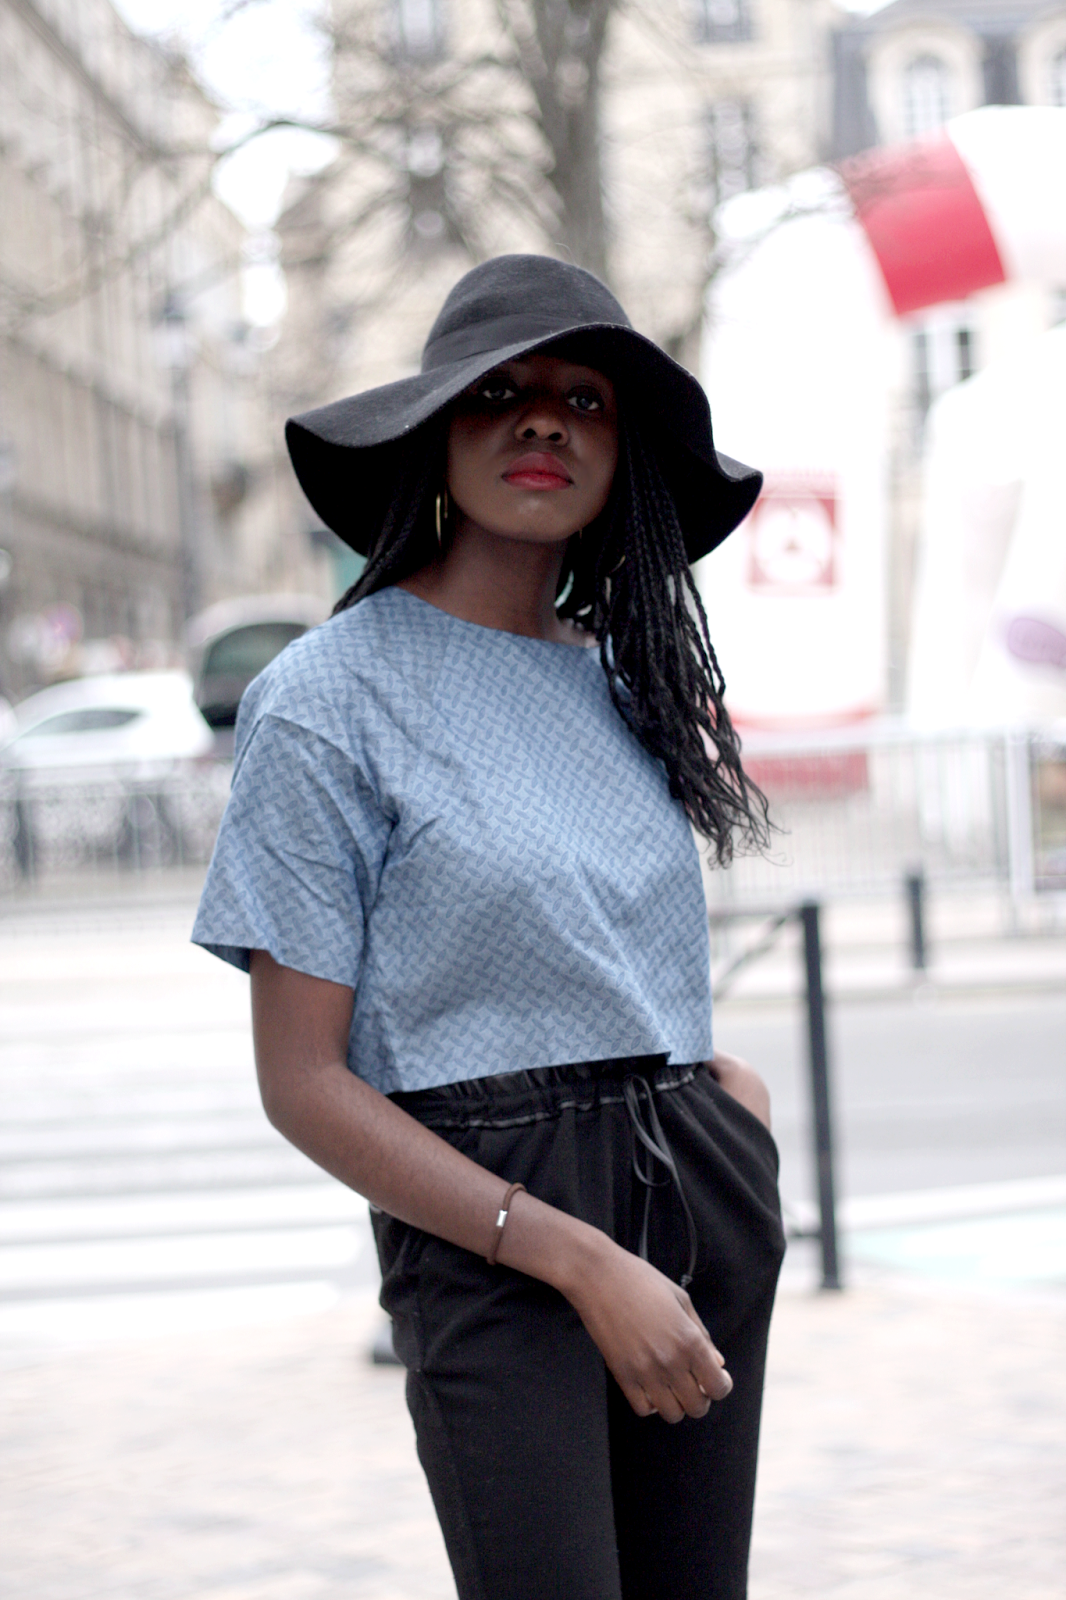 blog mode, blogueuse mode, blogueuse bordelaise, blogueuse bordelaise noire, veste noir manches courtes sheinside, pochette asos, pull only, pantalon only noir,  chaussures zara, bottines, bordeaux, ootd, olivia, tenue du jour, olivia blog mode, the daily women, boohoo, chaussures nelly